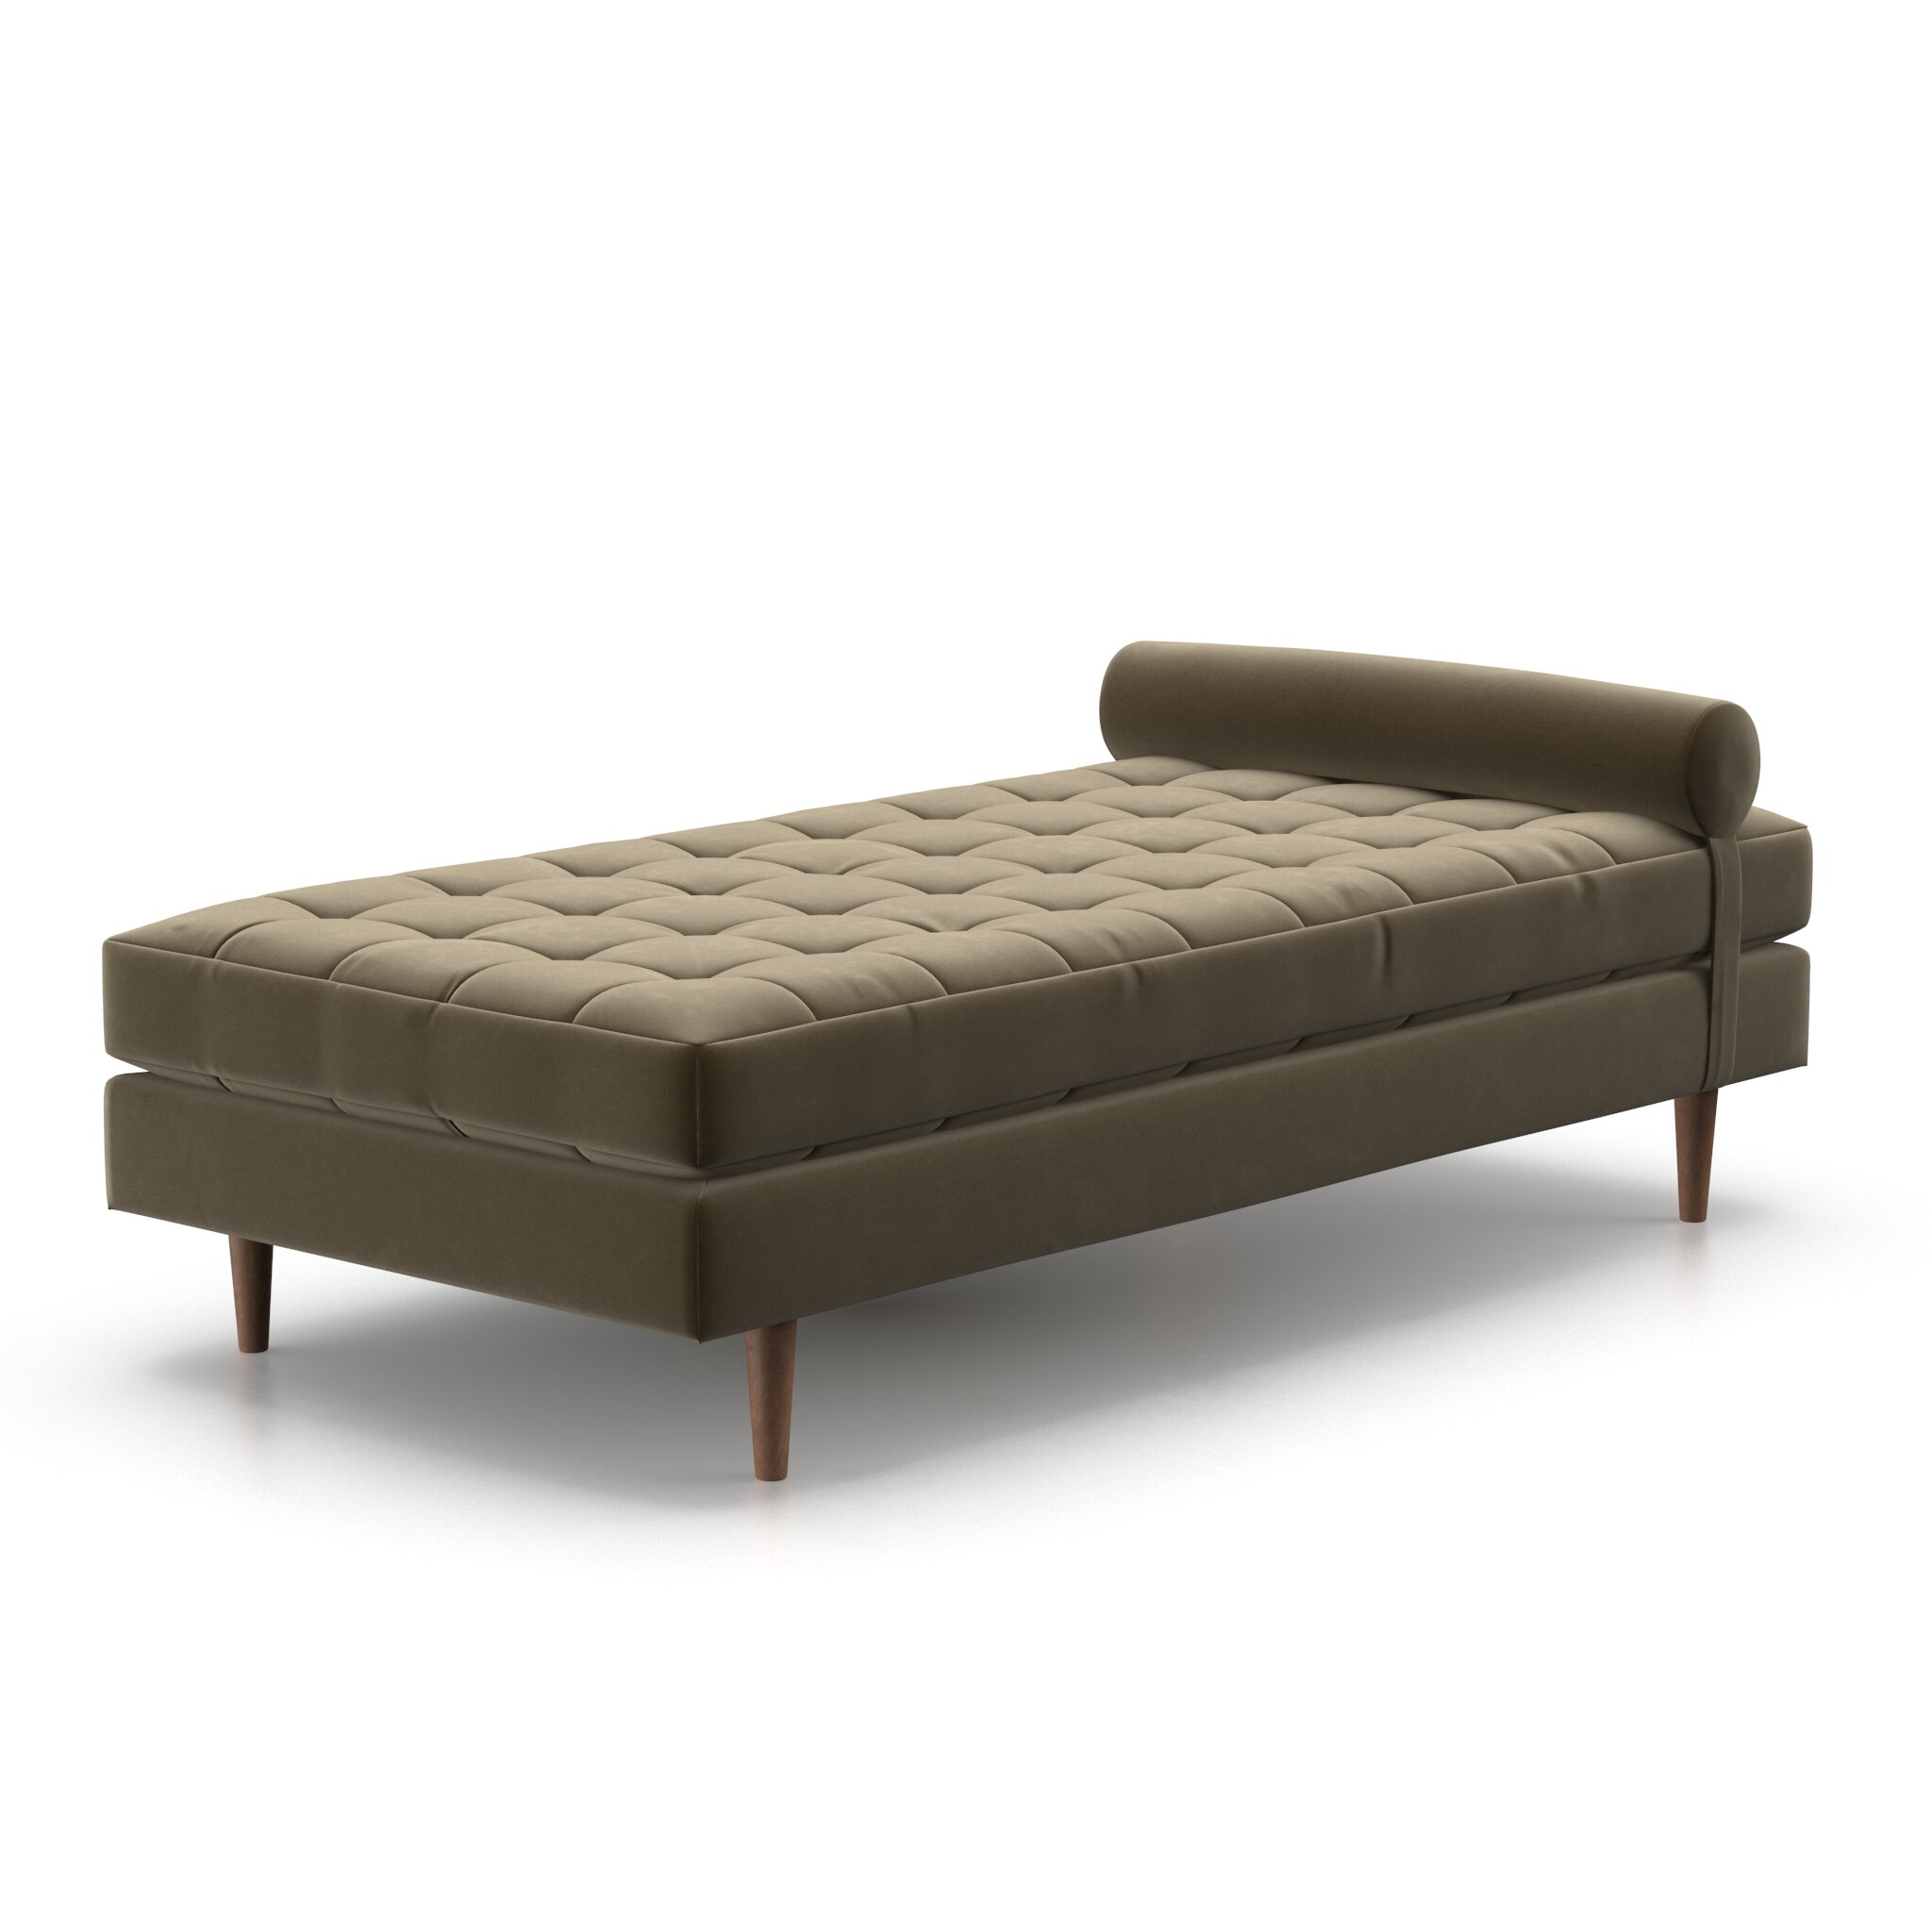 Almaguer chaise lounge reviews joss main